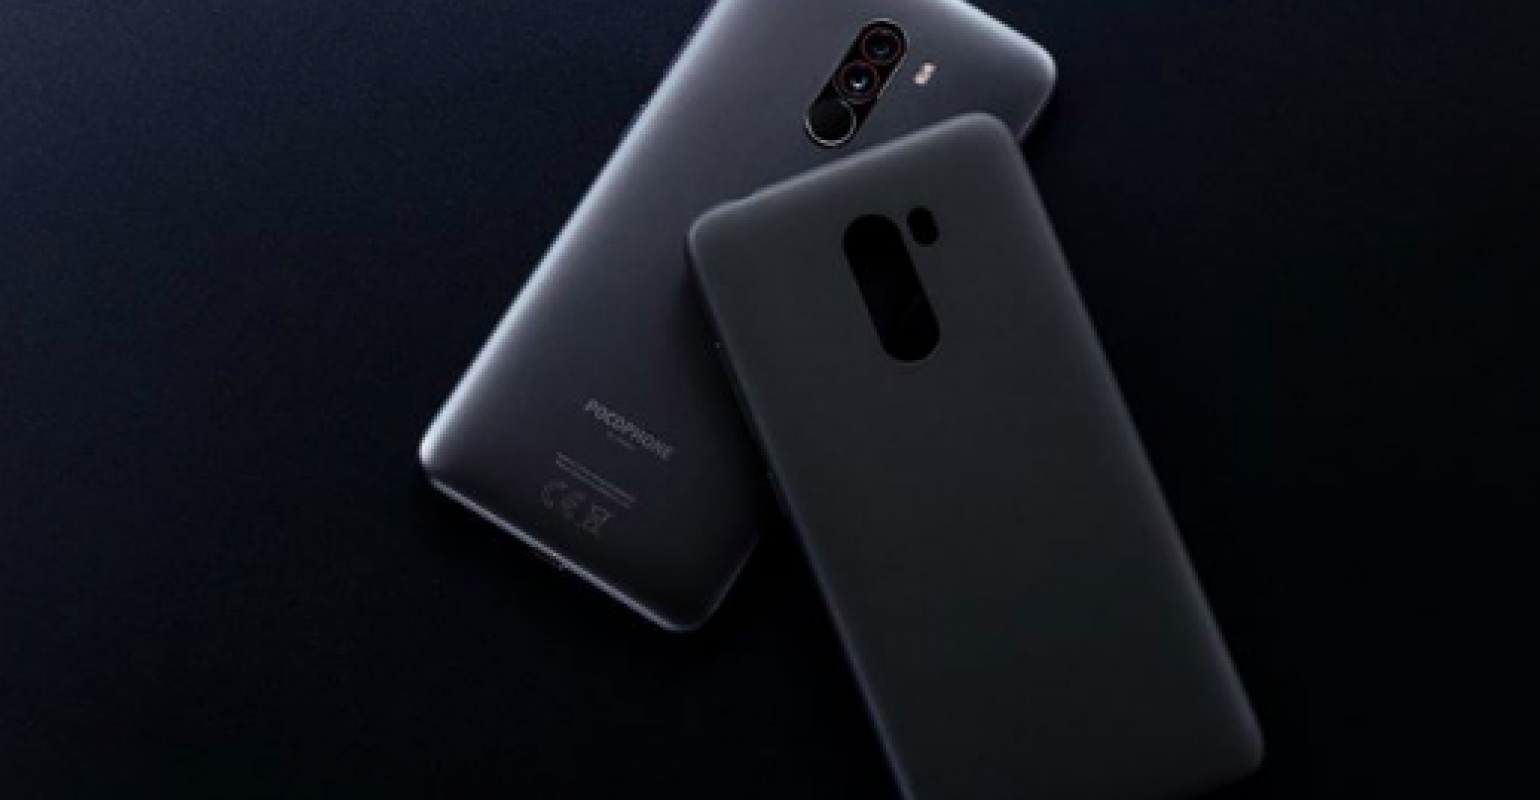 Pocophone F1: Will This Cheap Phone Cost You in the End